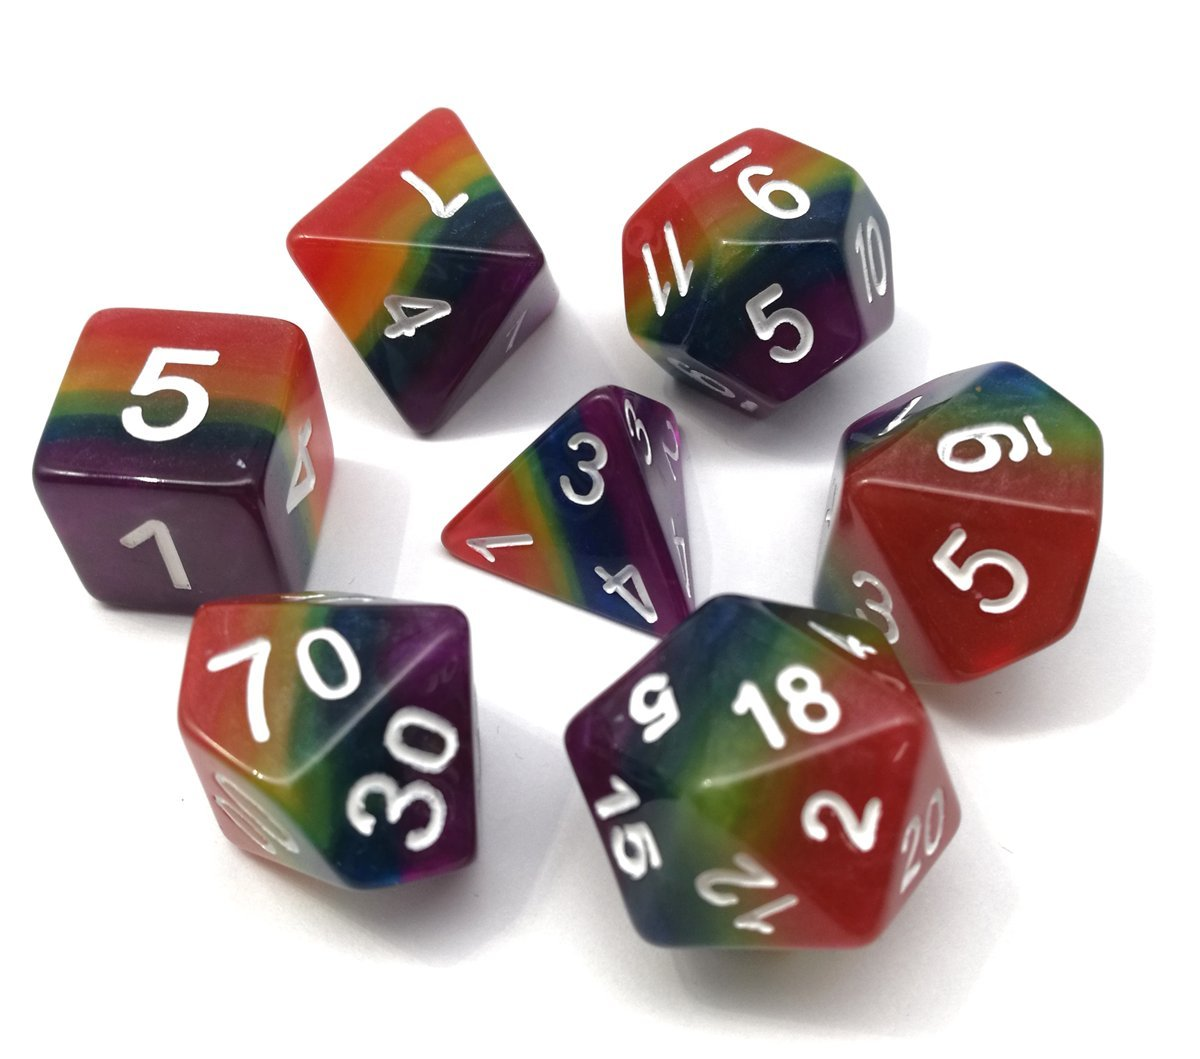 Polyhedral Dice Sets Rainbow Dice - for Great for Dungeons and Dragons Tabletop, Roleyplaying & DnD Games, Math & MTG including Pouch